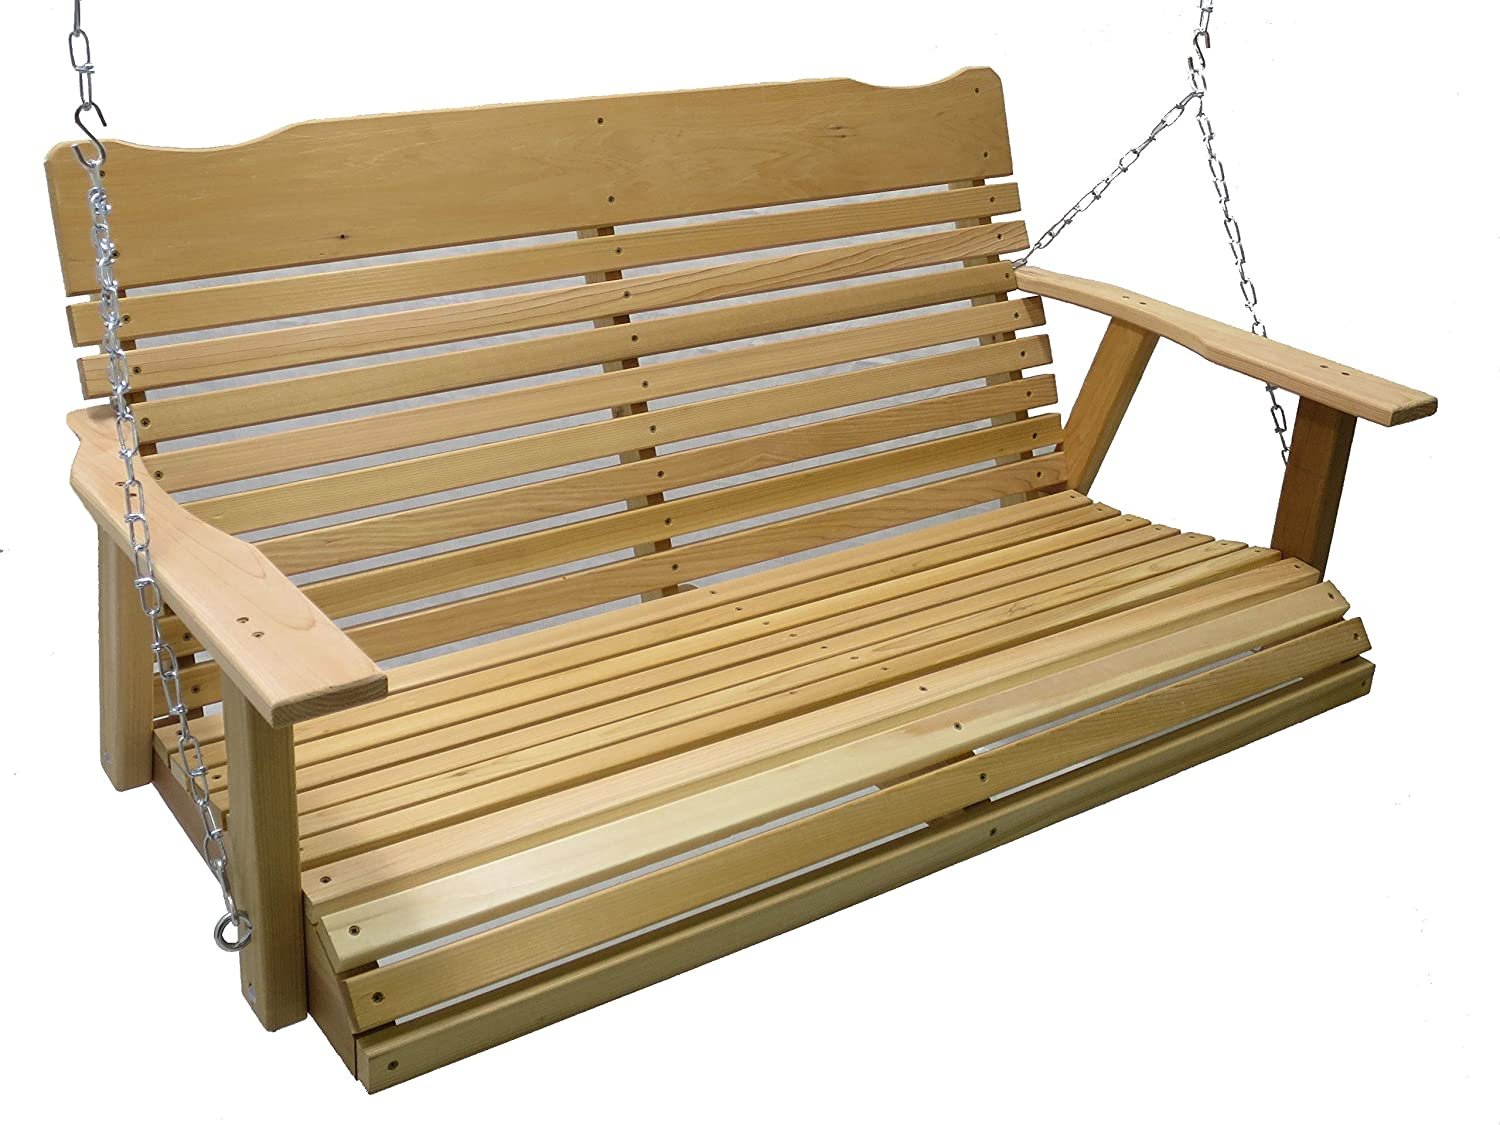 Kilmer Creek 4 Foot Natural Cedar Porch Swing with Chain, Springs, Amish